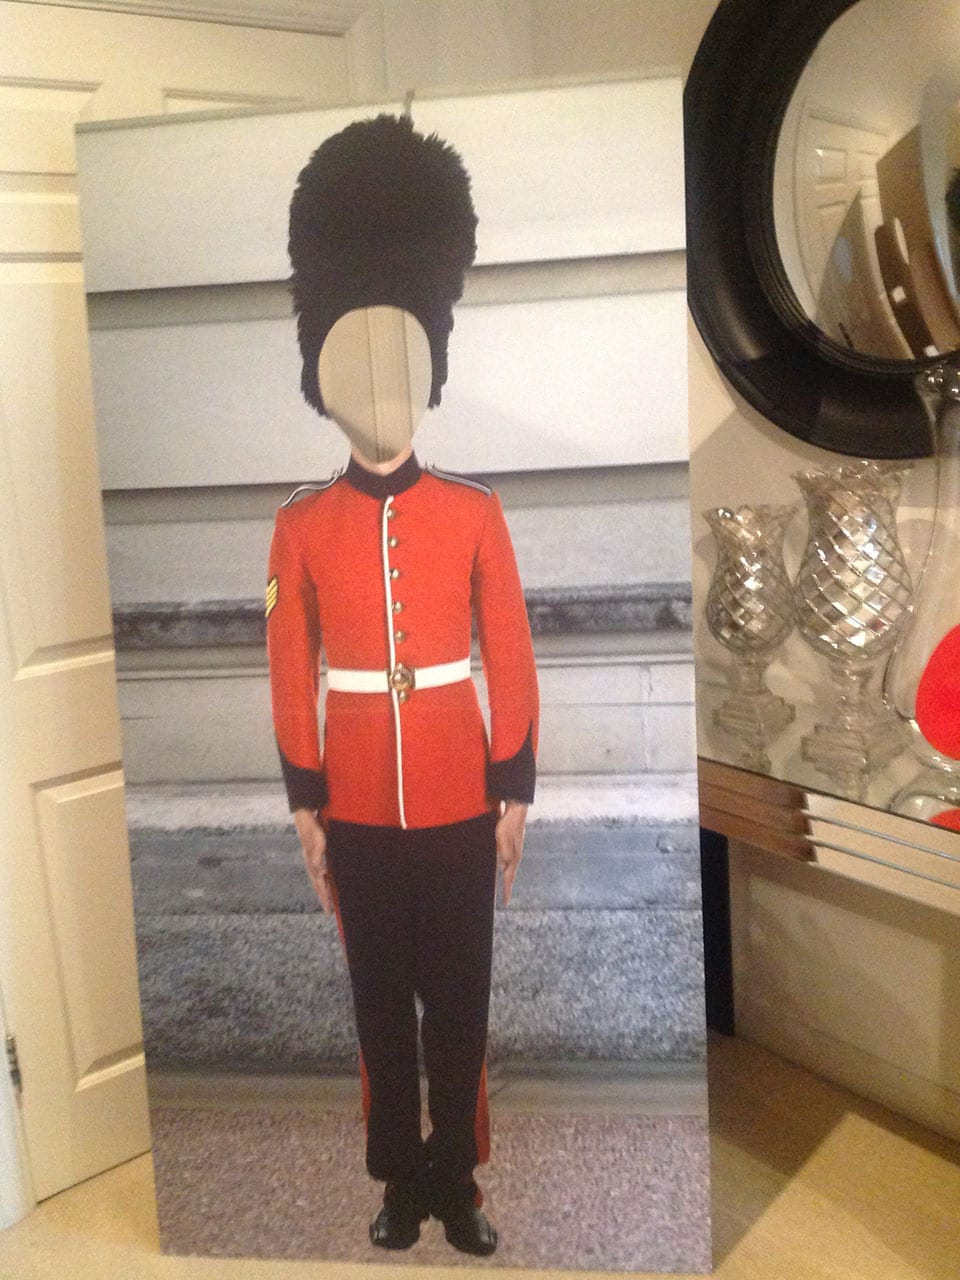 Personalised cardboard cutouts for business, marketing stands, promotional stands